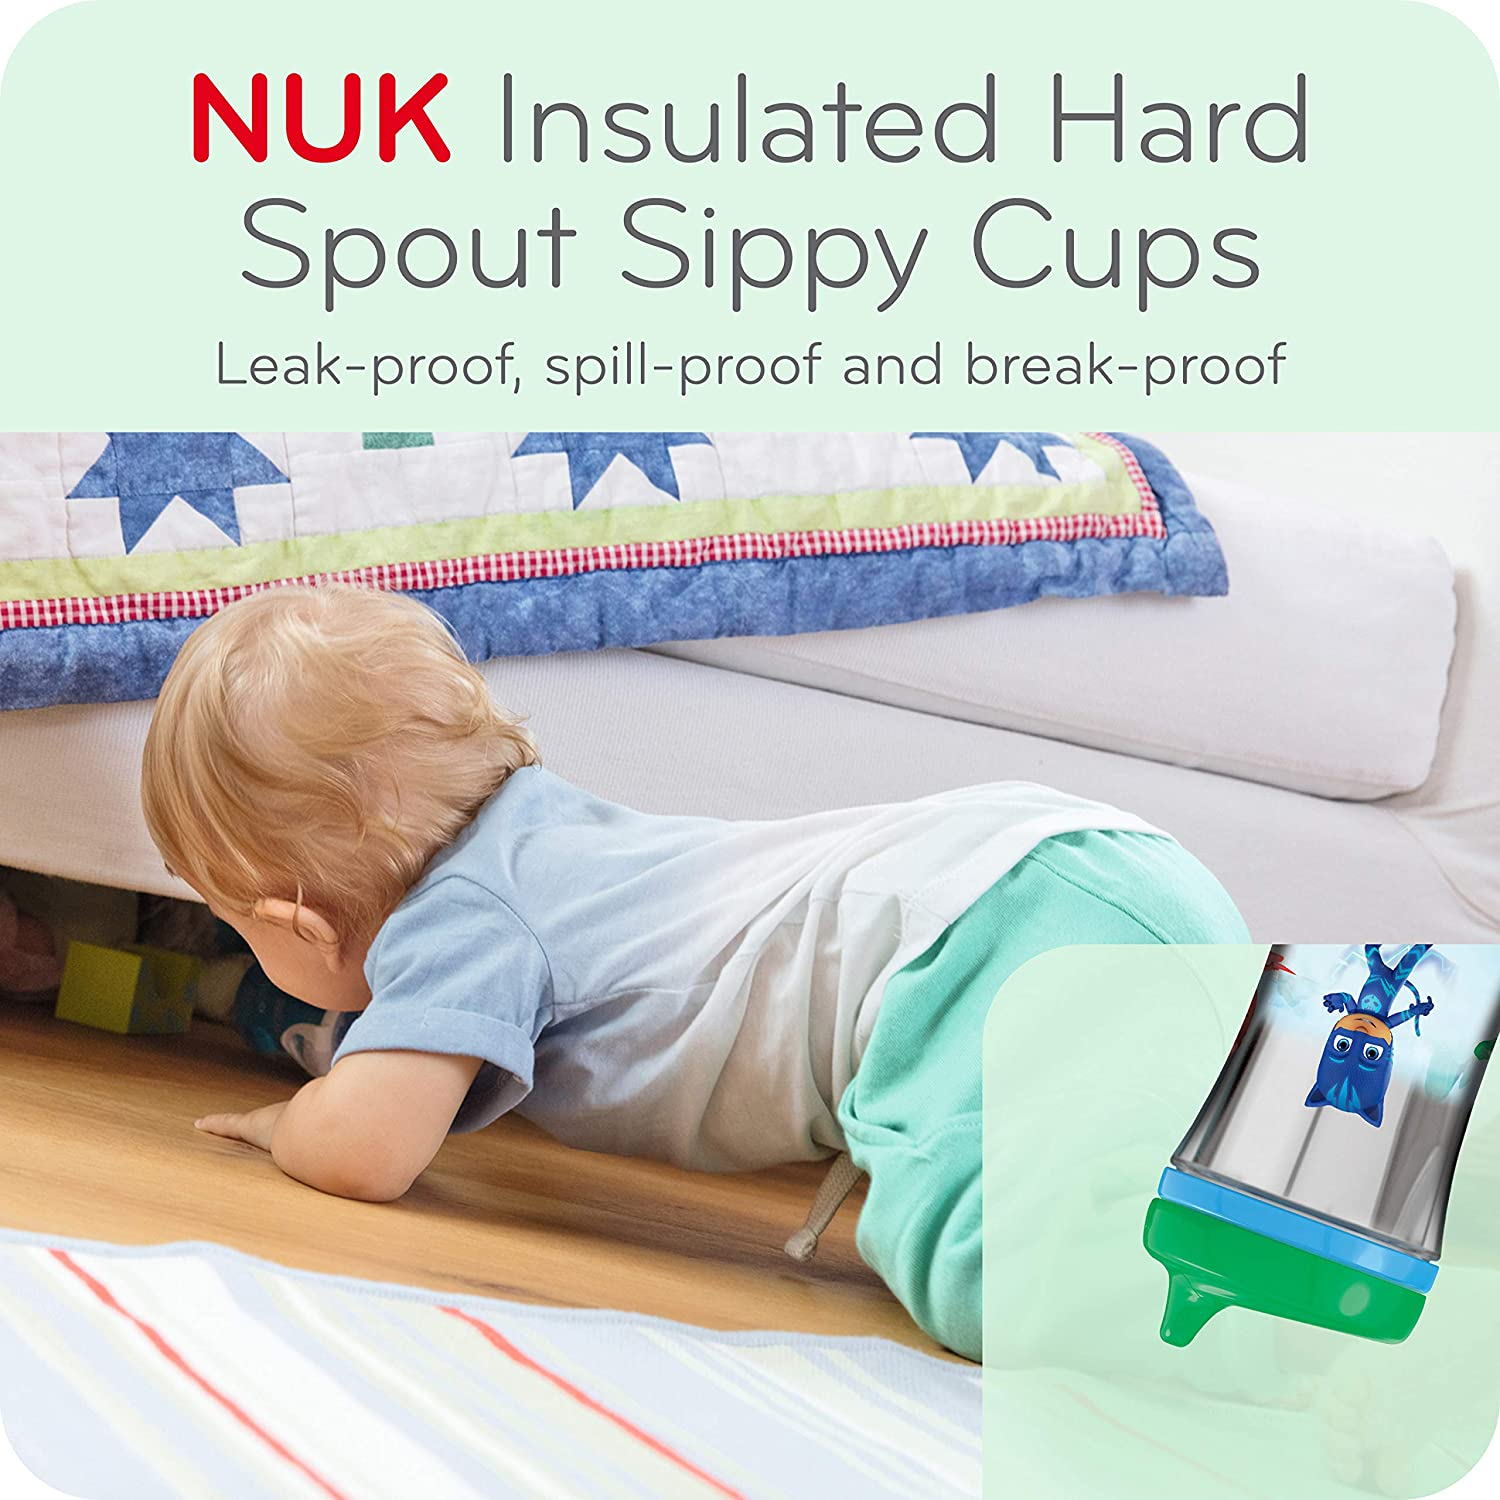 NUK® PJ Masks Insulated Magic 10oz Hard Spout Cup Product Image 4 of 8